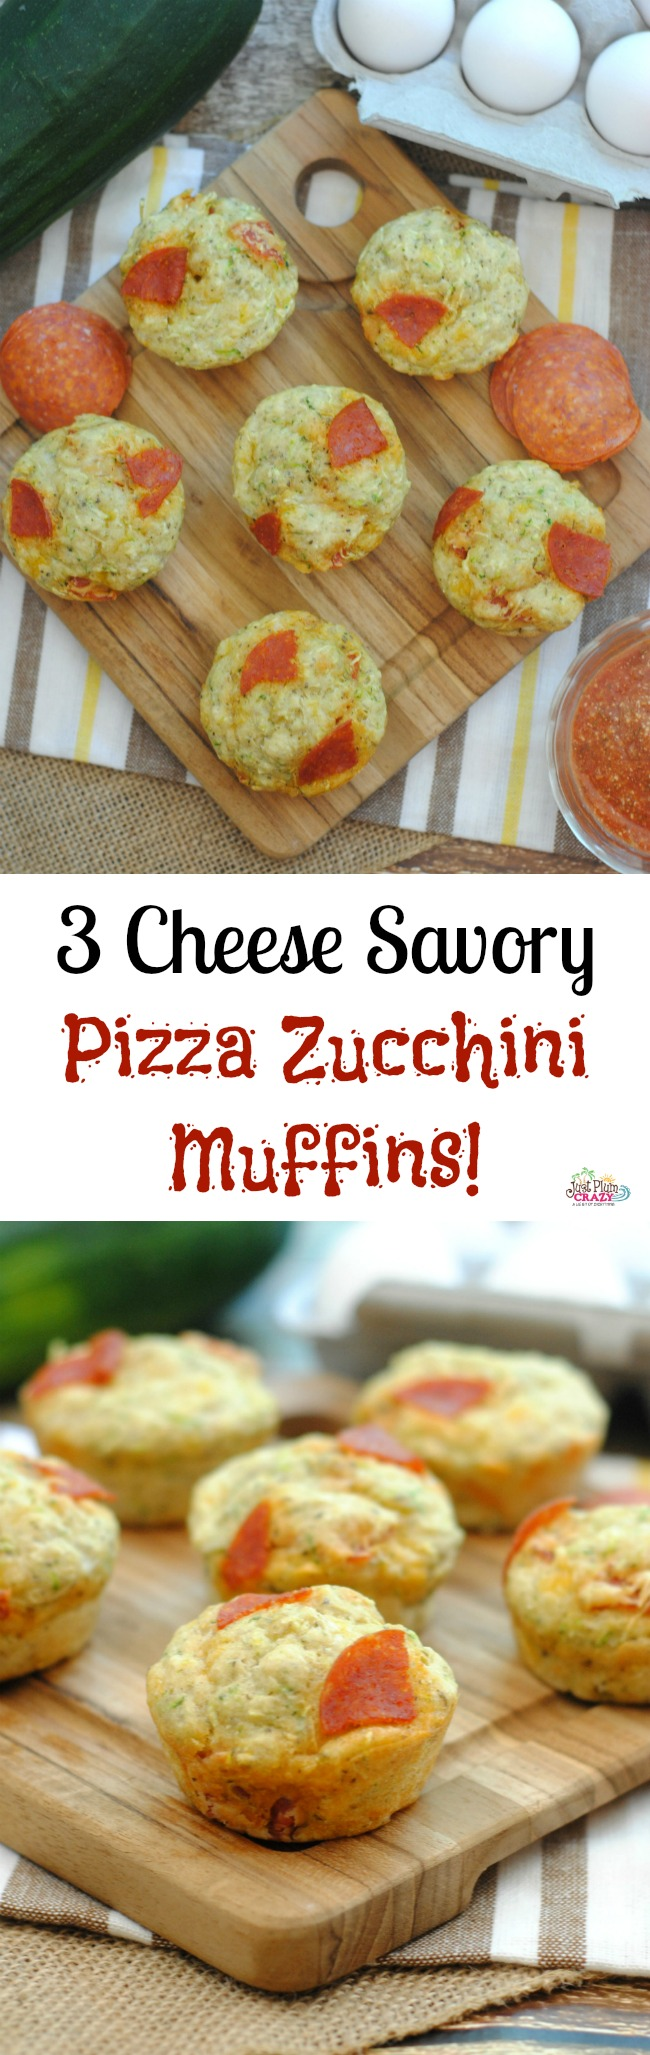 Pizza Zucchini Muffins! Just thinking about them makes my mouth water. What better way to sneak in some veggies than with with Pizza Zucchini Muffins?